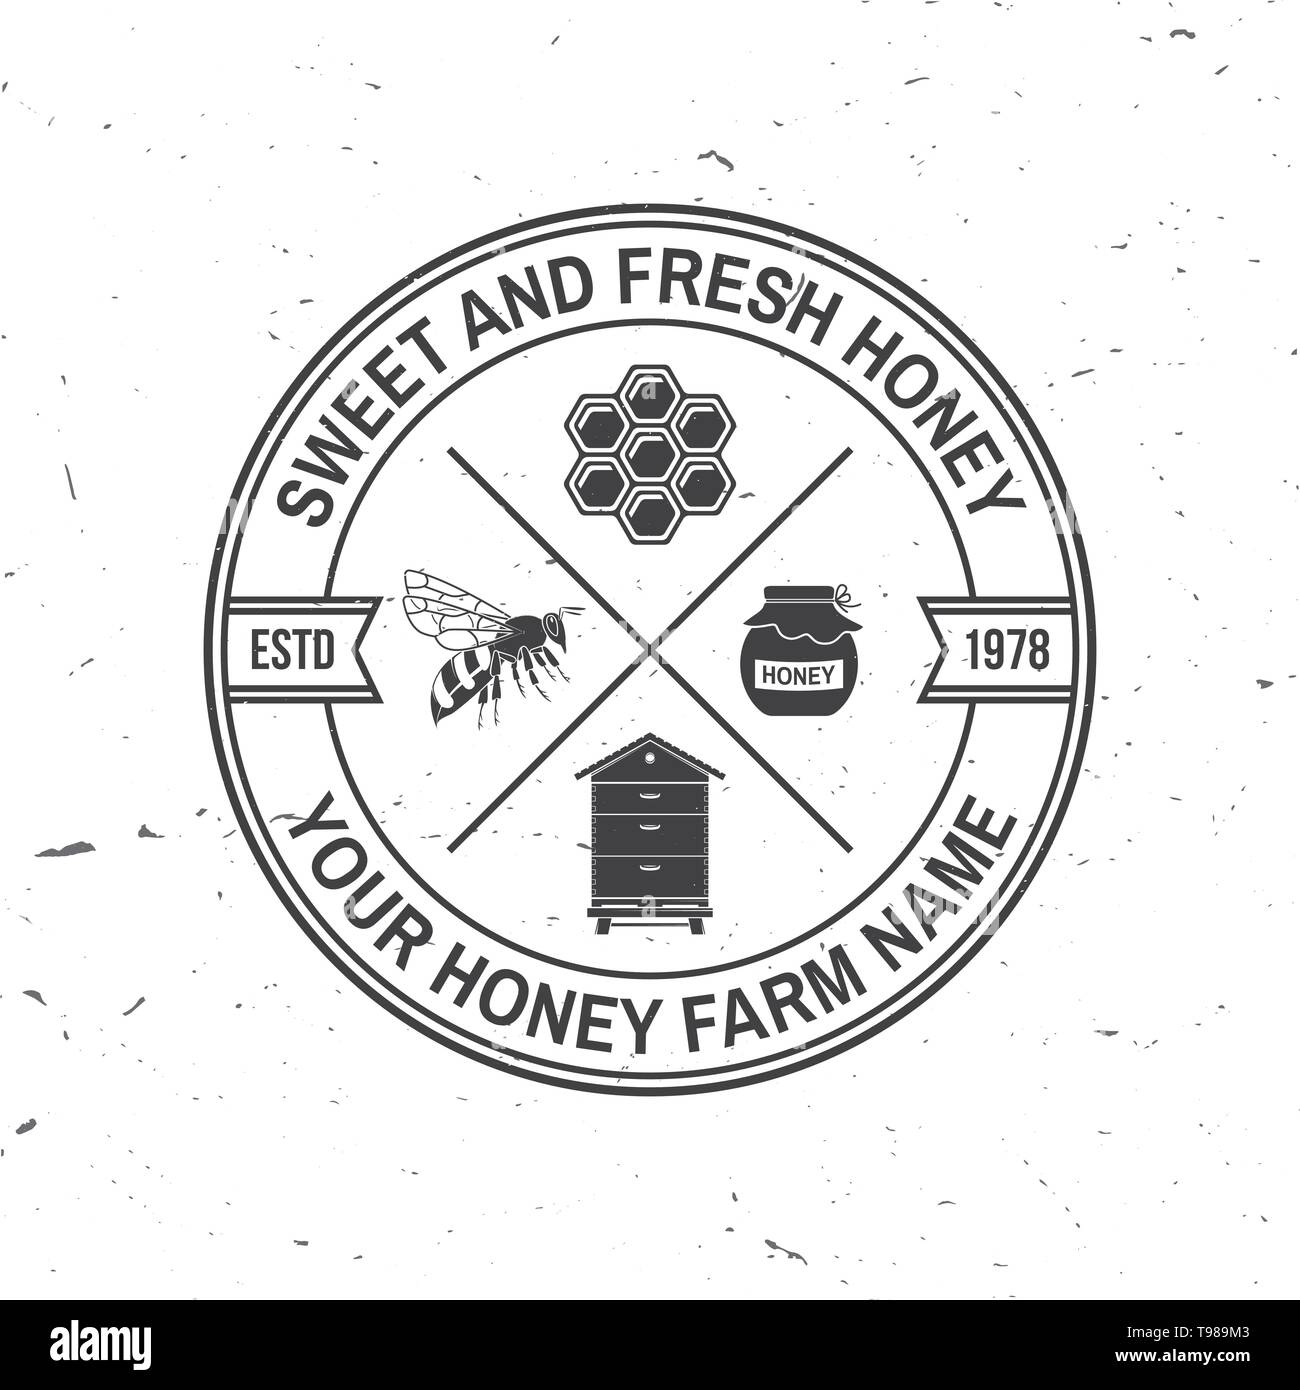 Honey farm badge. Vector illustration. Concept for shirt, print, stamp or tee. Vintage typography design with bee, hive and honey dipper silhouette. Retro design for honey bee farm business - Stock Image